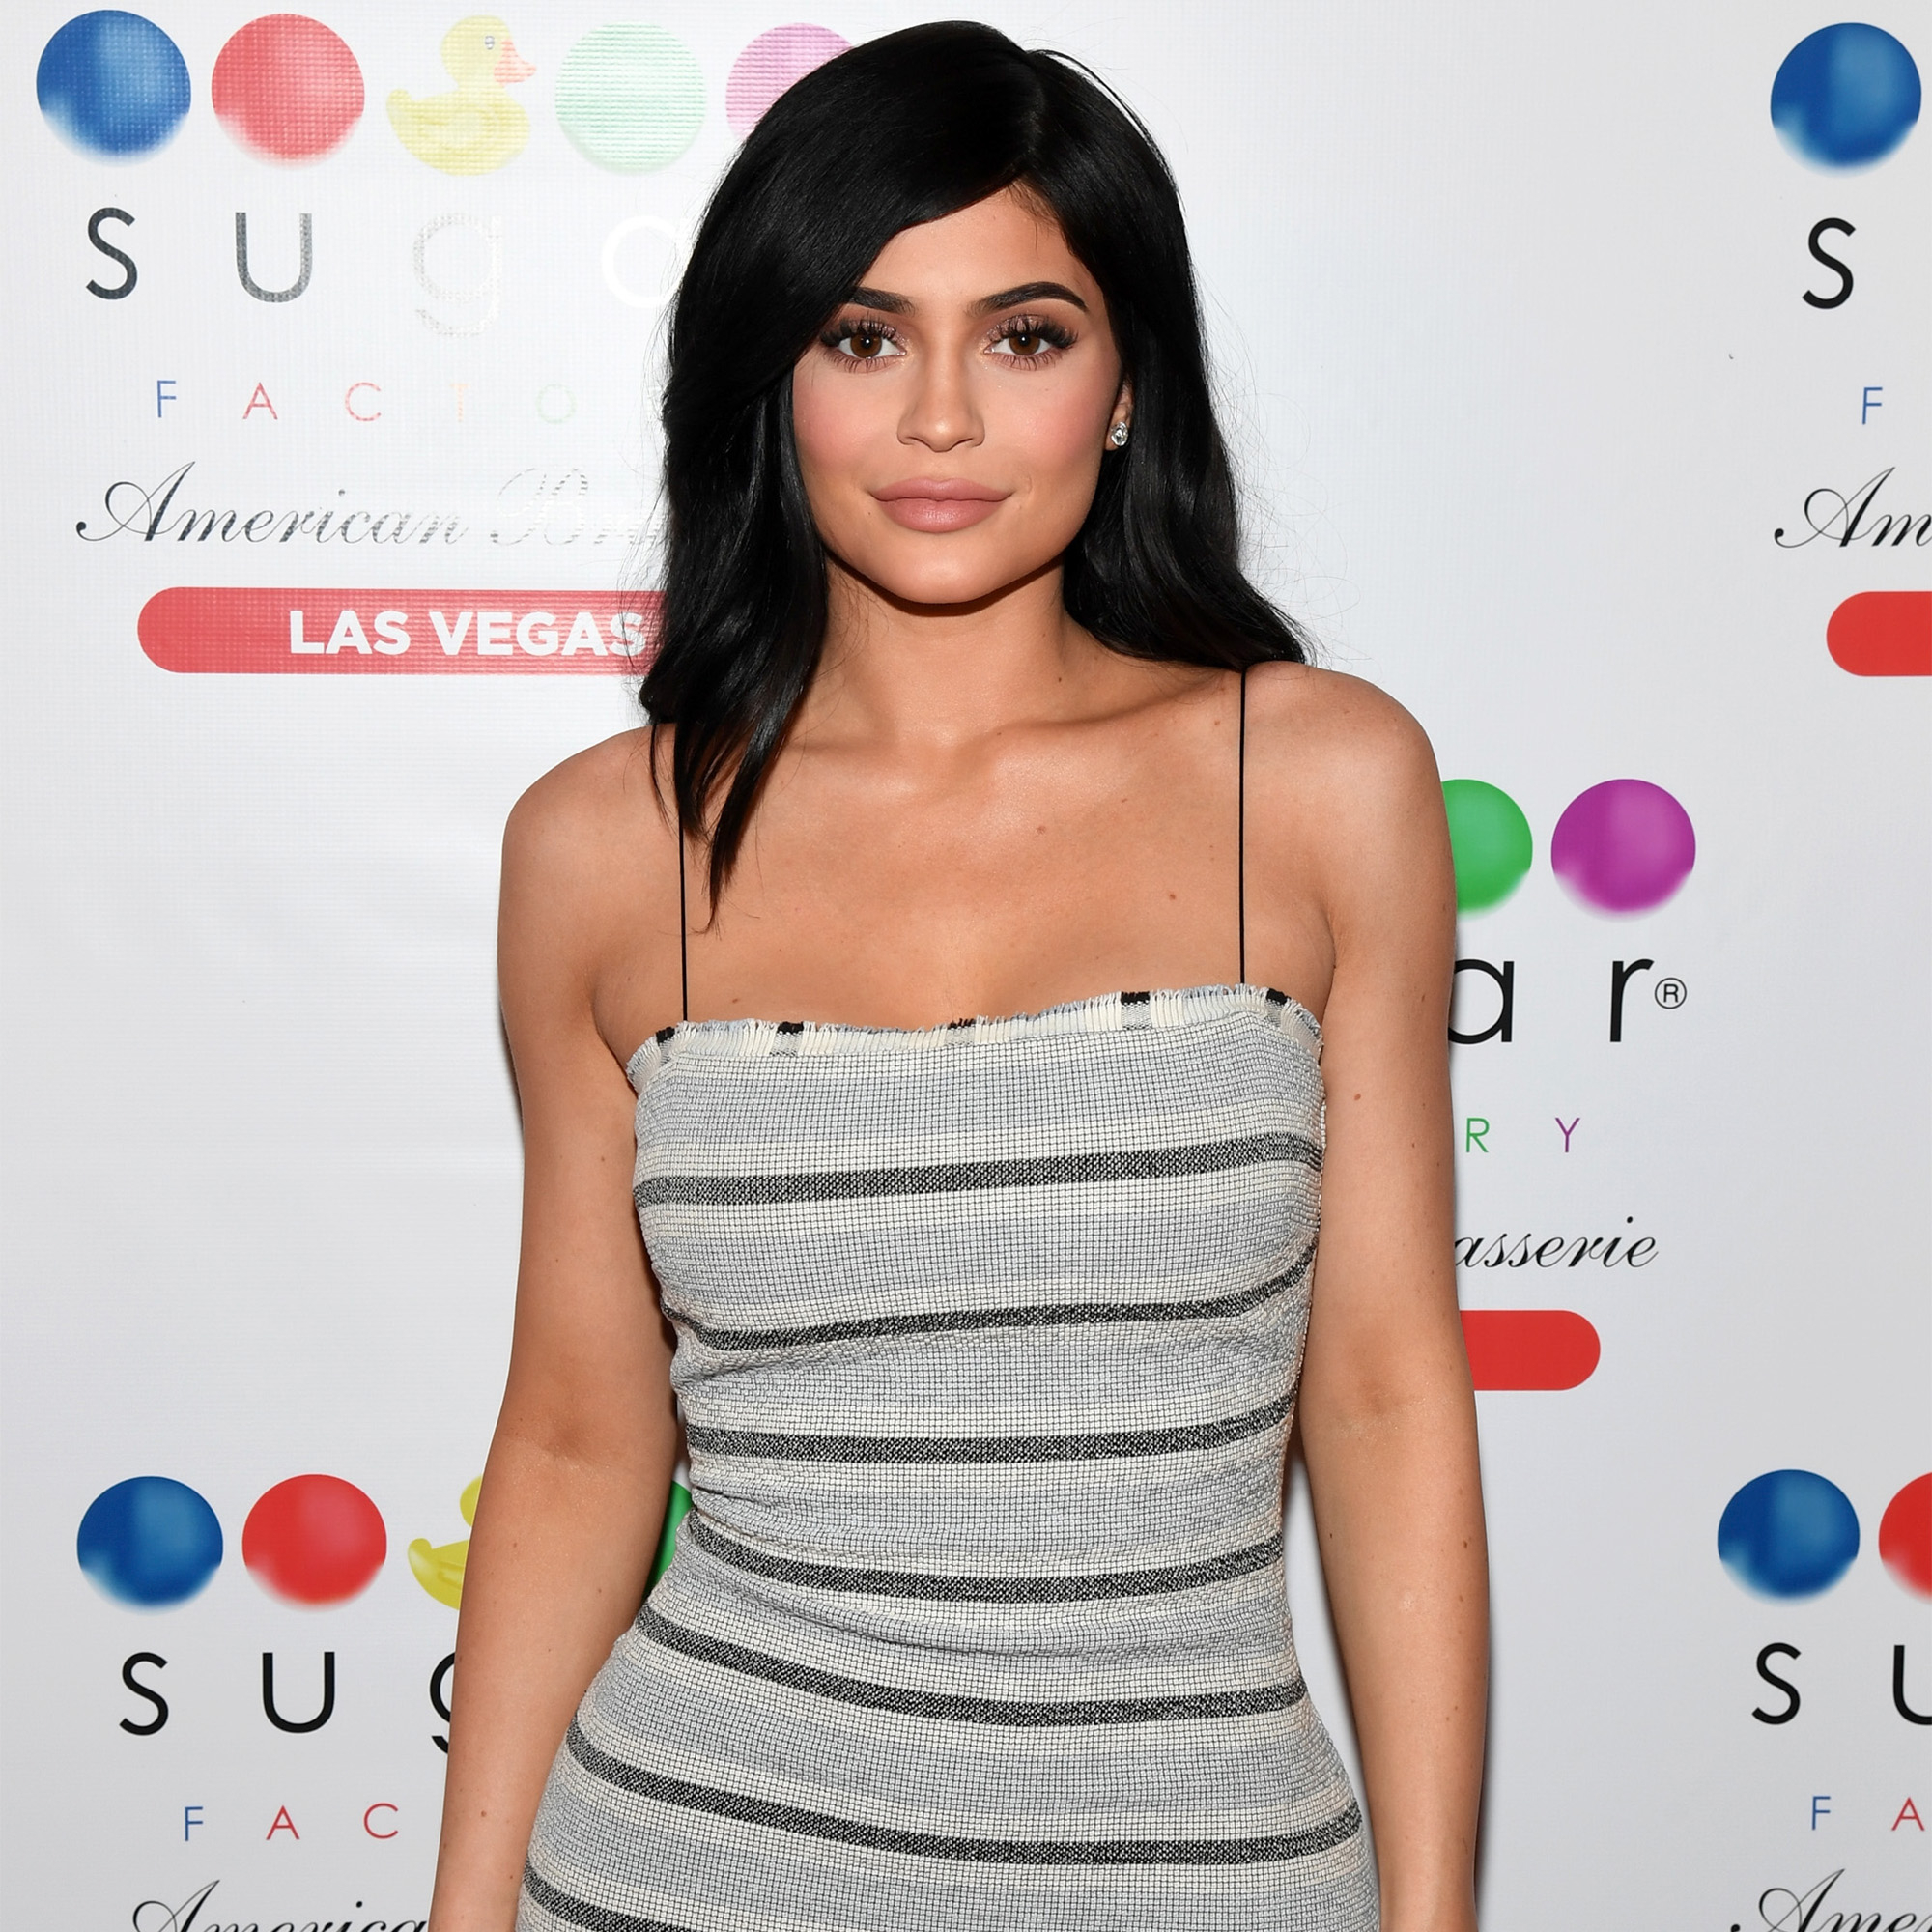 b599405ea Kylie Jenner Slyly References Pregnancy With Snapchat Post: 'Nothing's  Gonna Hurt You Baby'